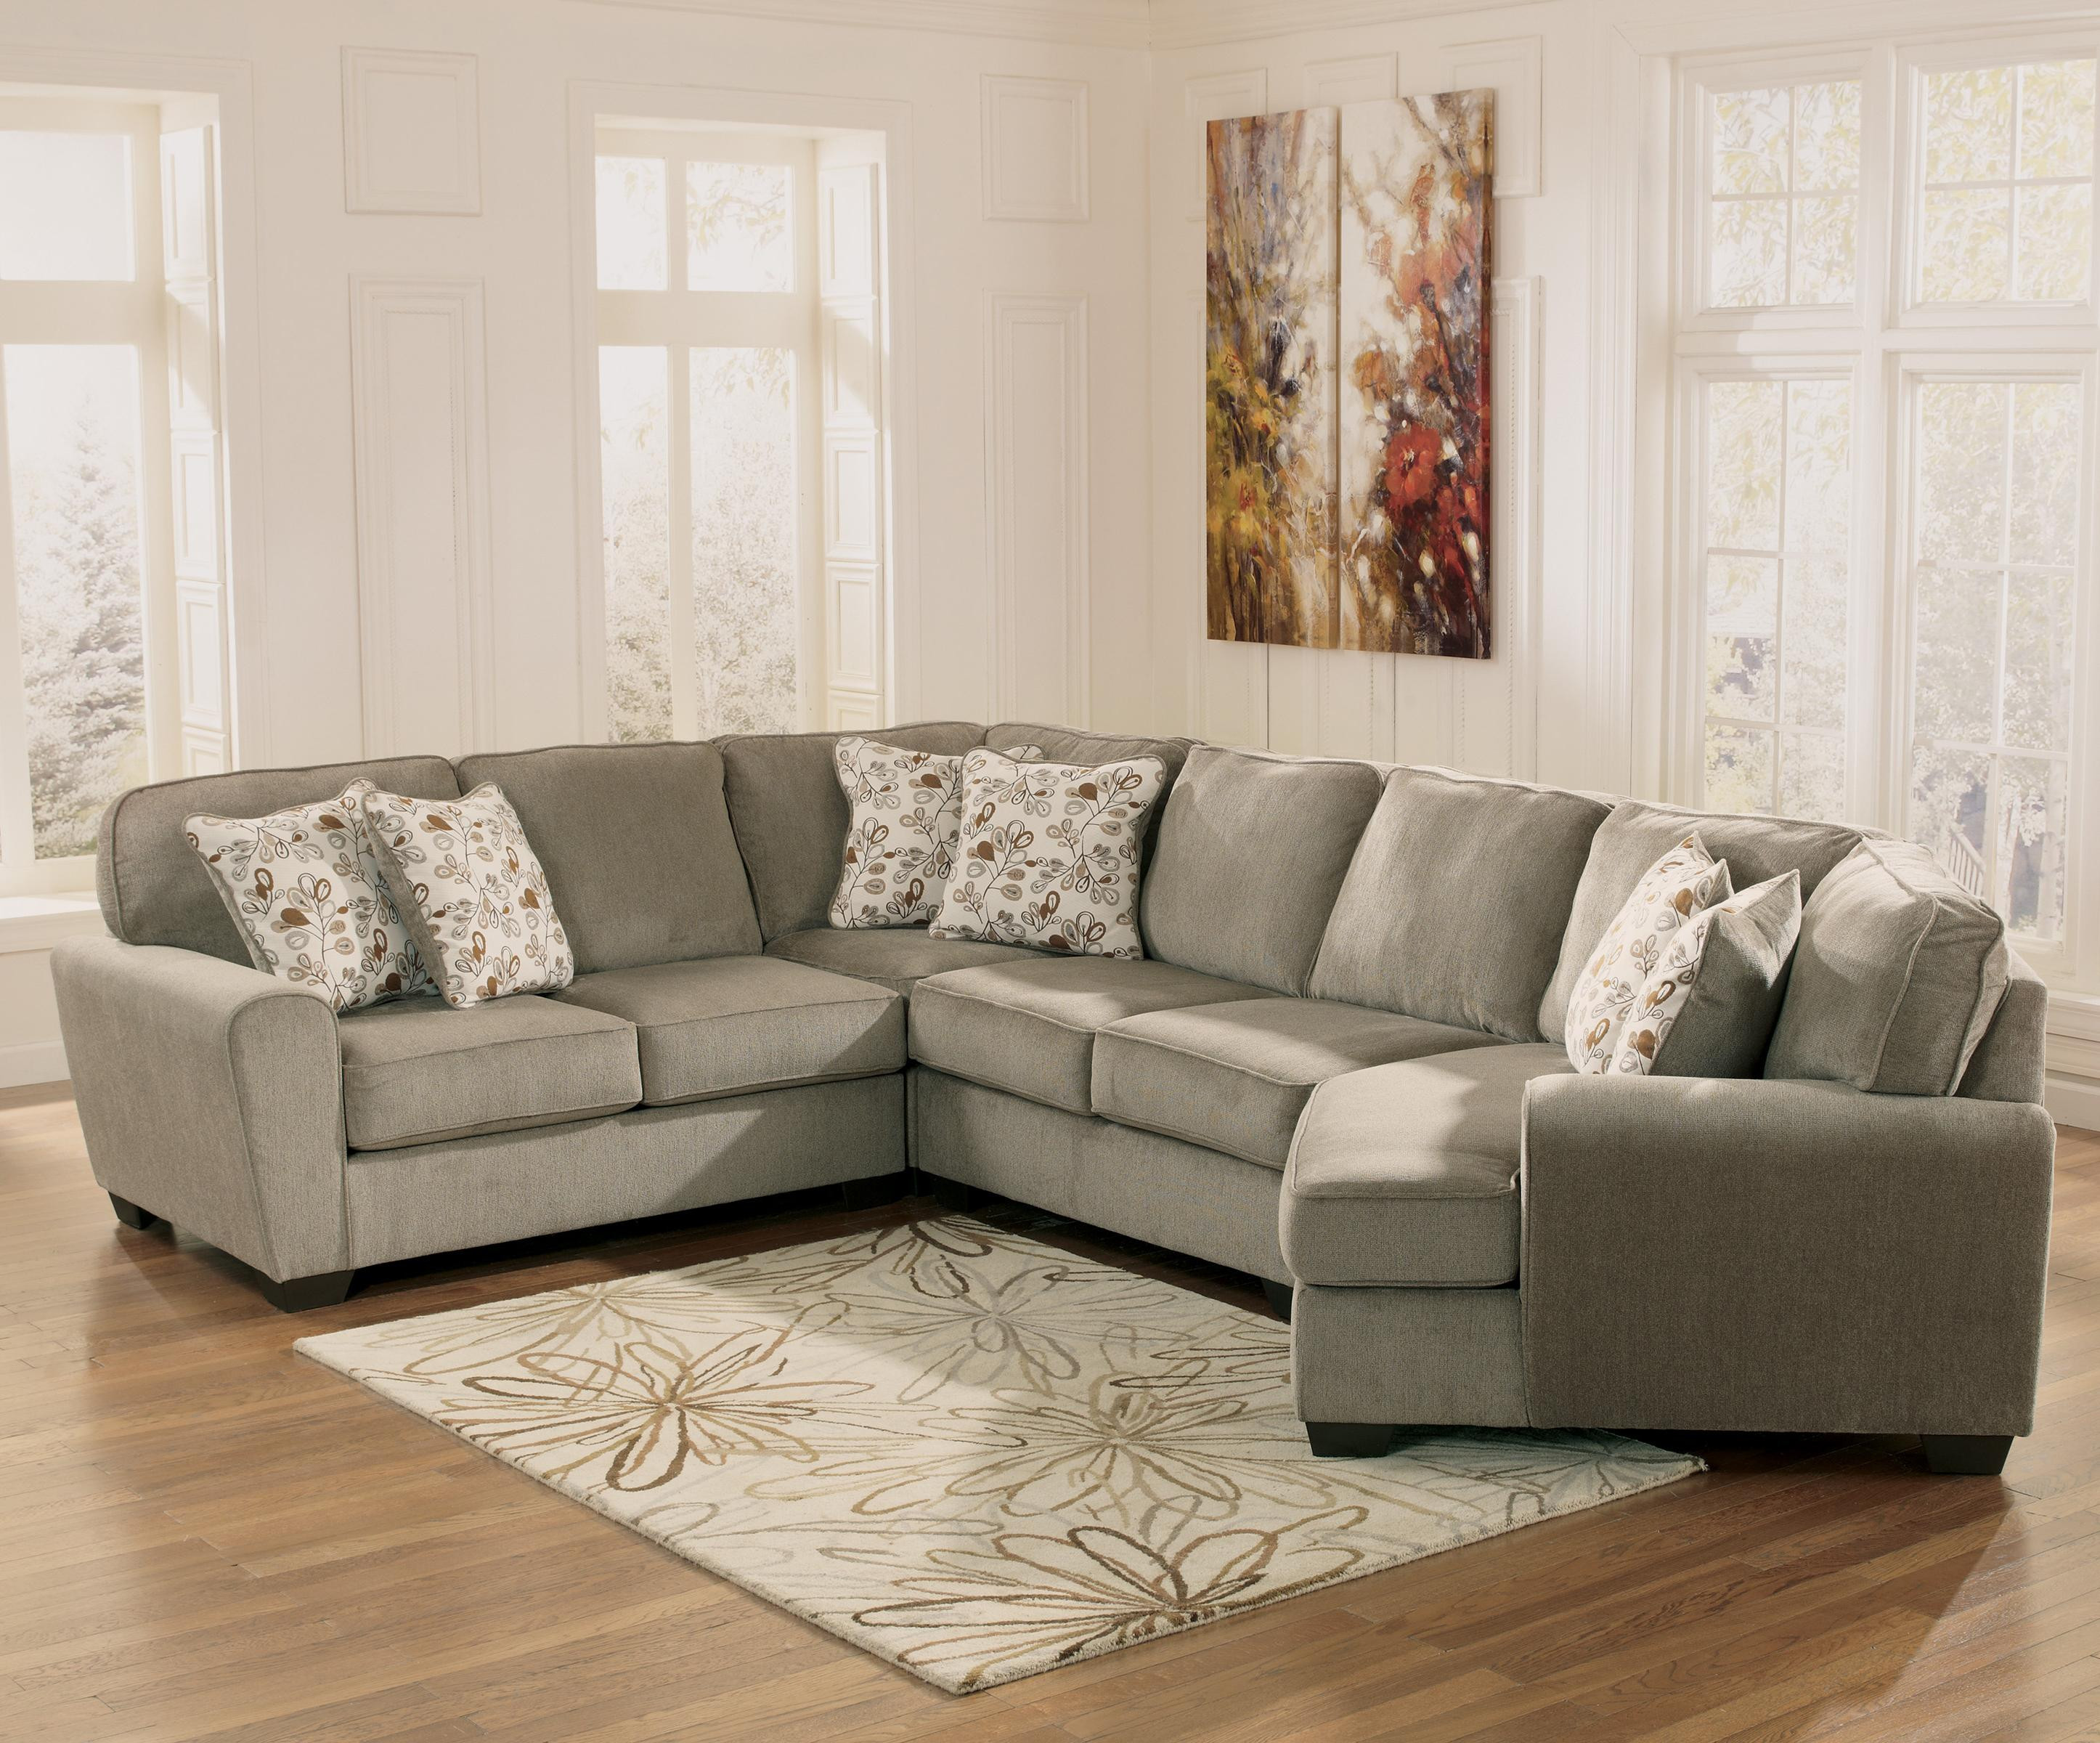 Best ideas about Mini Sectional Sofa . Save or Pin Patina 4 Piece Small Sectional with Right Cuddler Now.